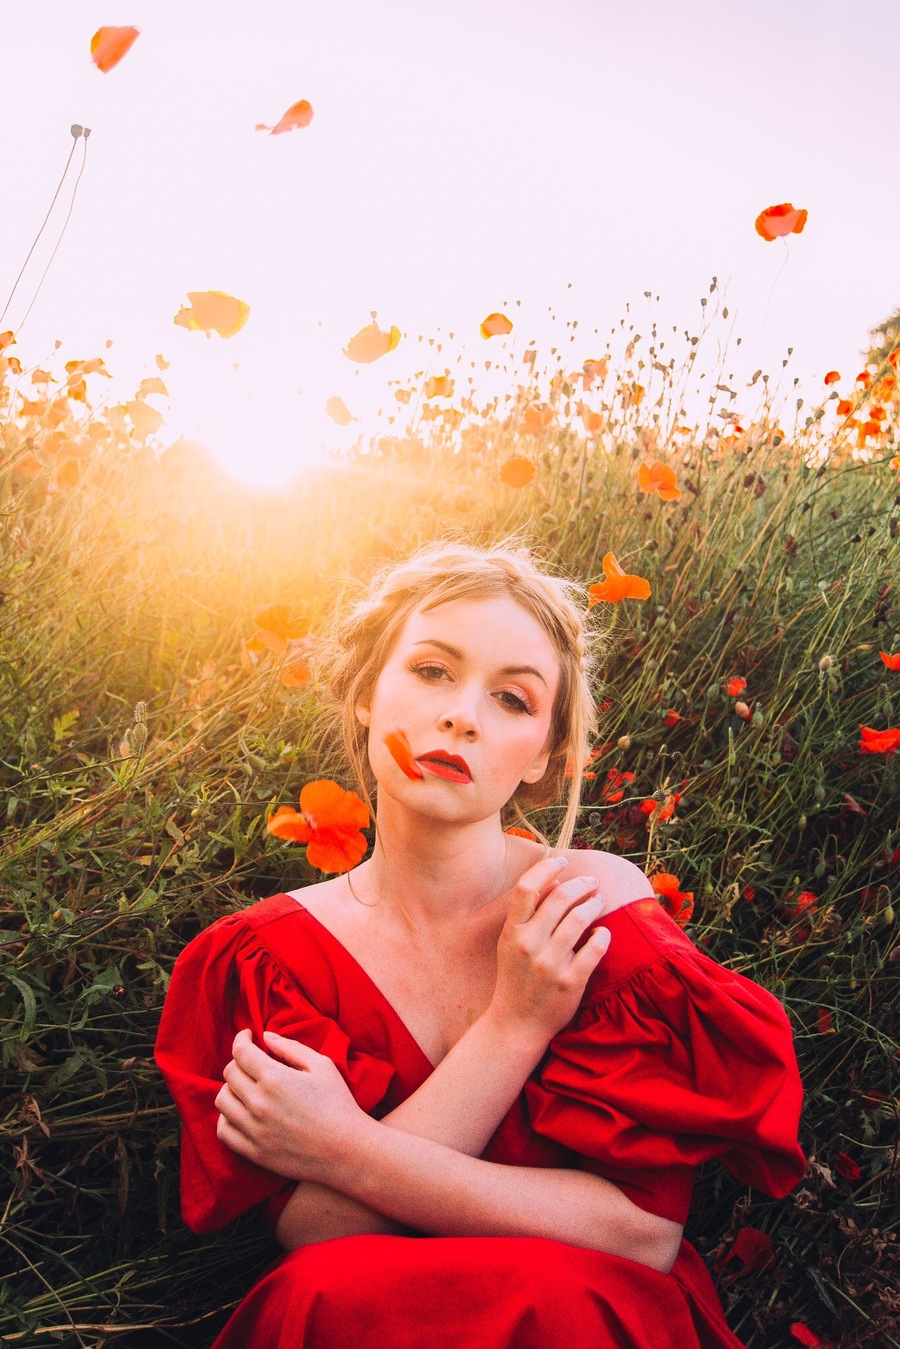 """""""Through the dancing poppies stole a breeze, most softly lulling to my soul."""" — John Keats / Photography by Thomas Oscar Miles, Model Miss Rosie Lea / Uploaded 31st July 2019 @ 07:48 PM"""